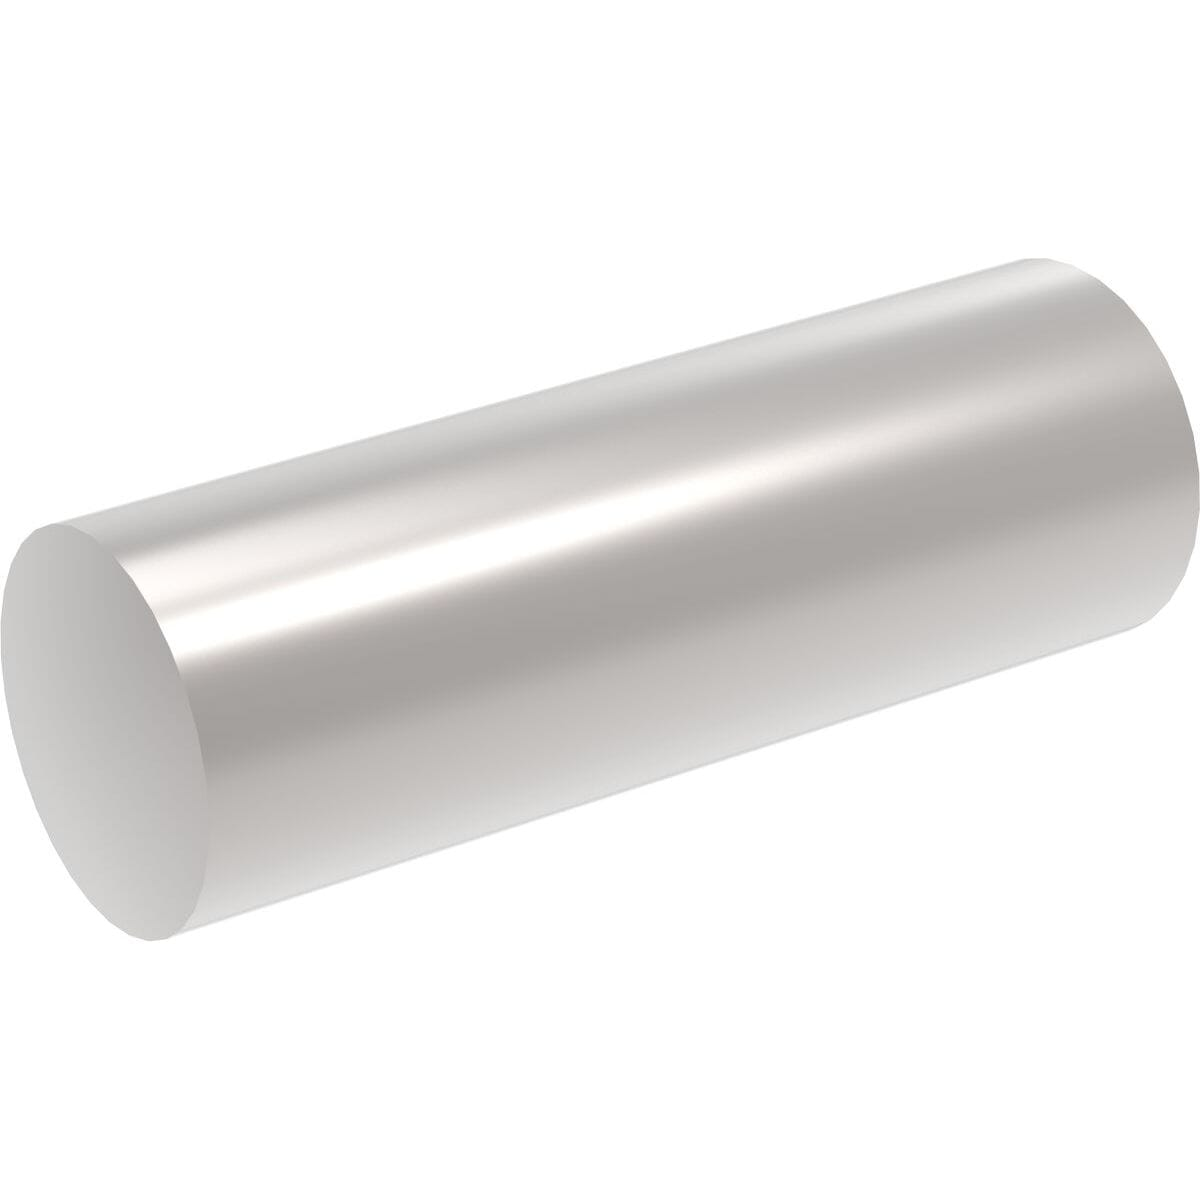 4mm x 16mm Taper Pins (DIN 1B) - A1 Stainless Steel